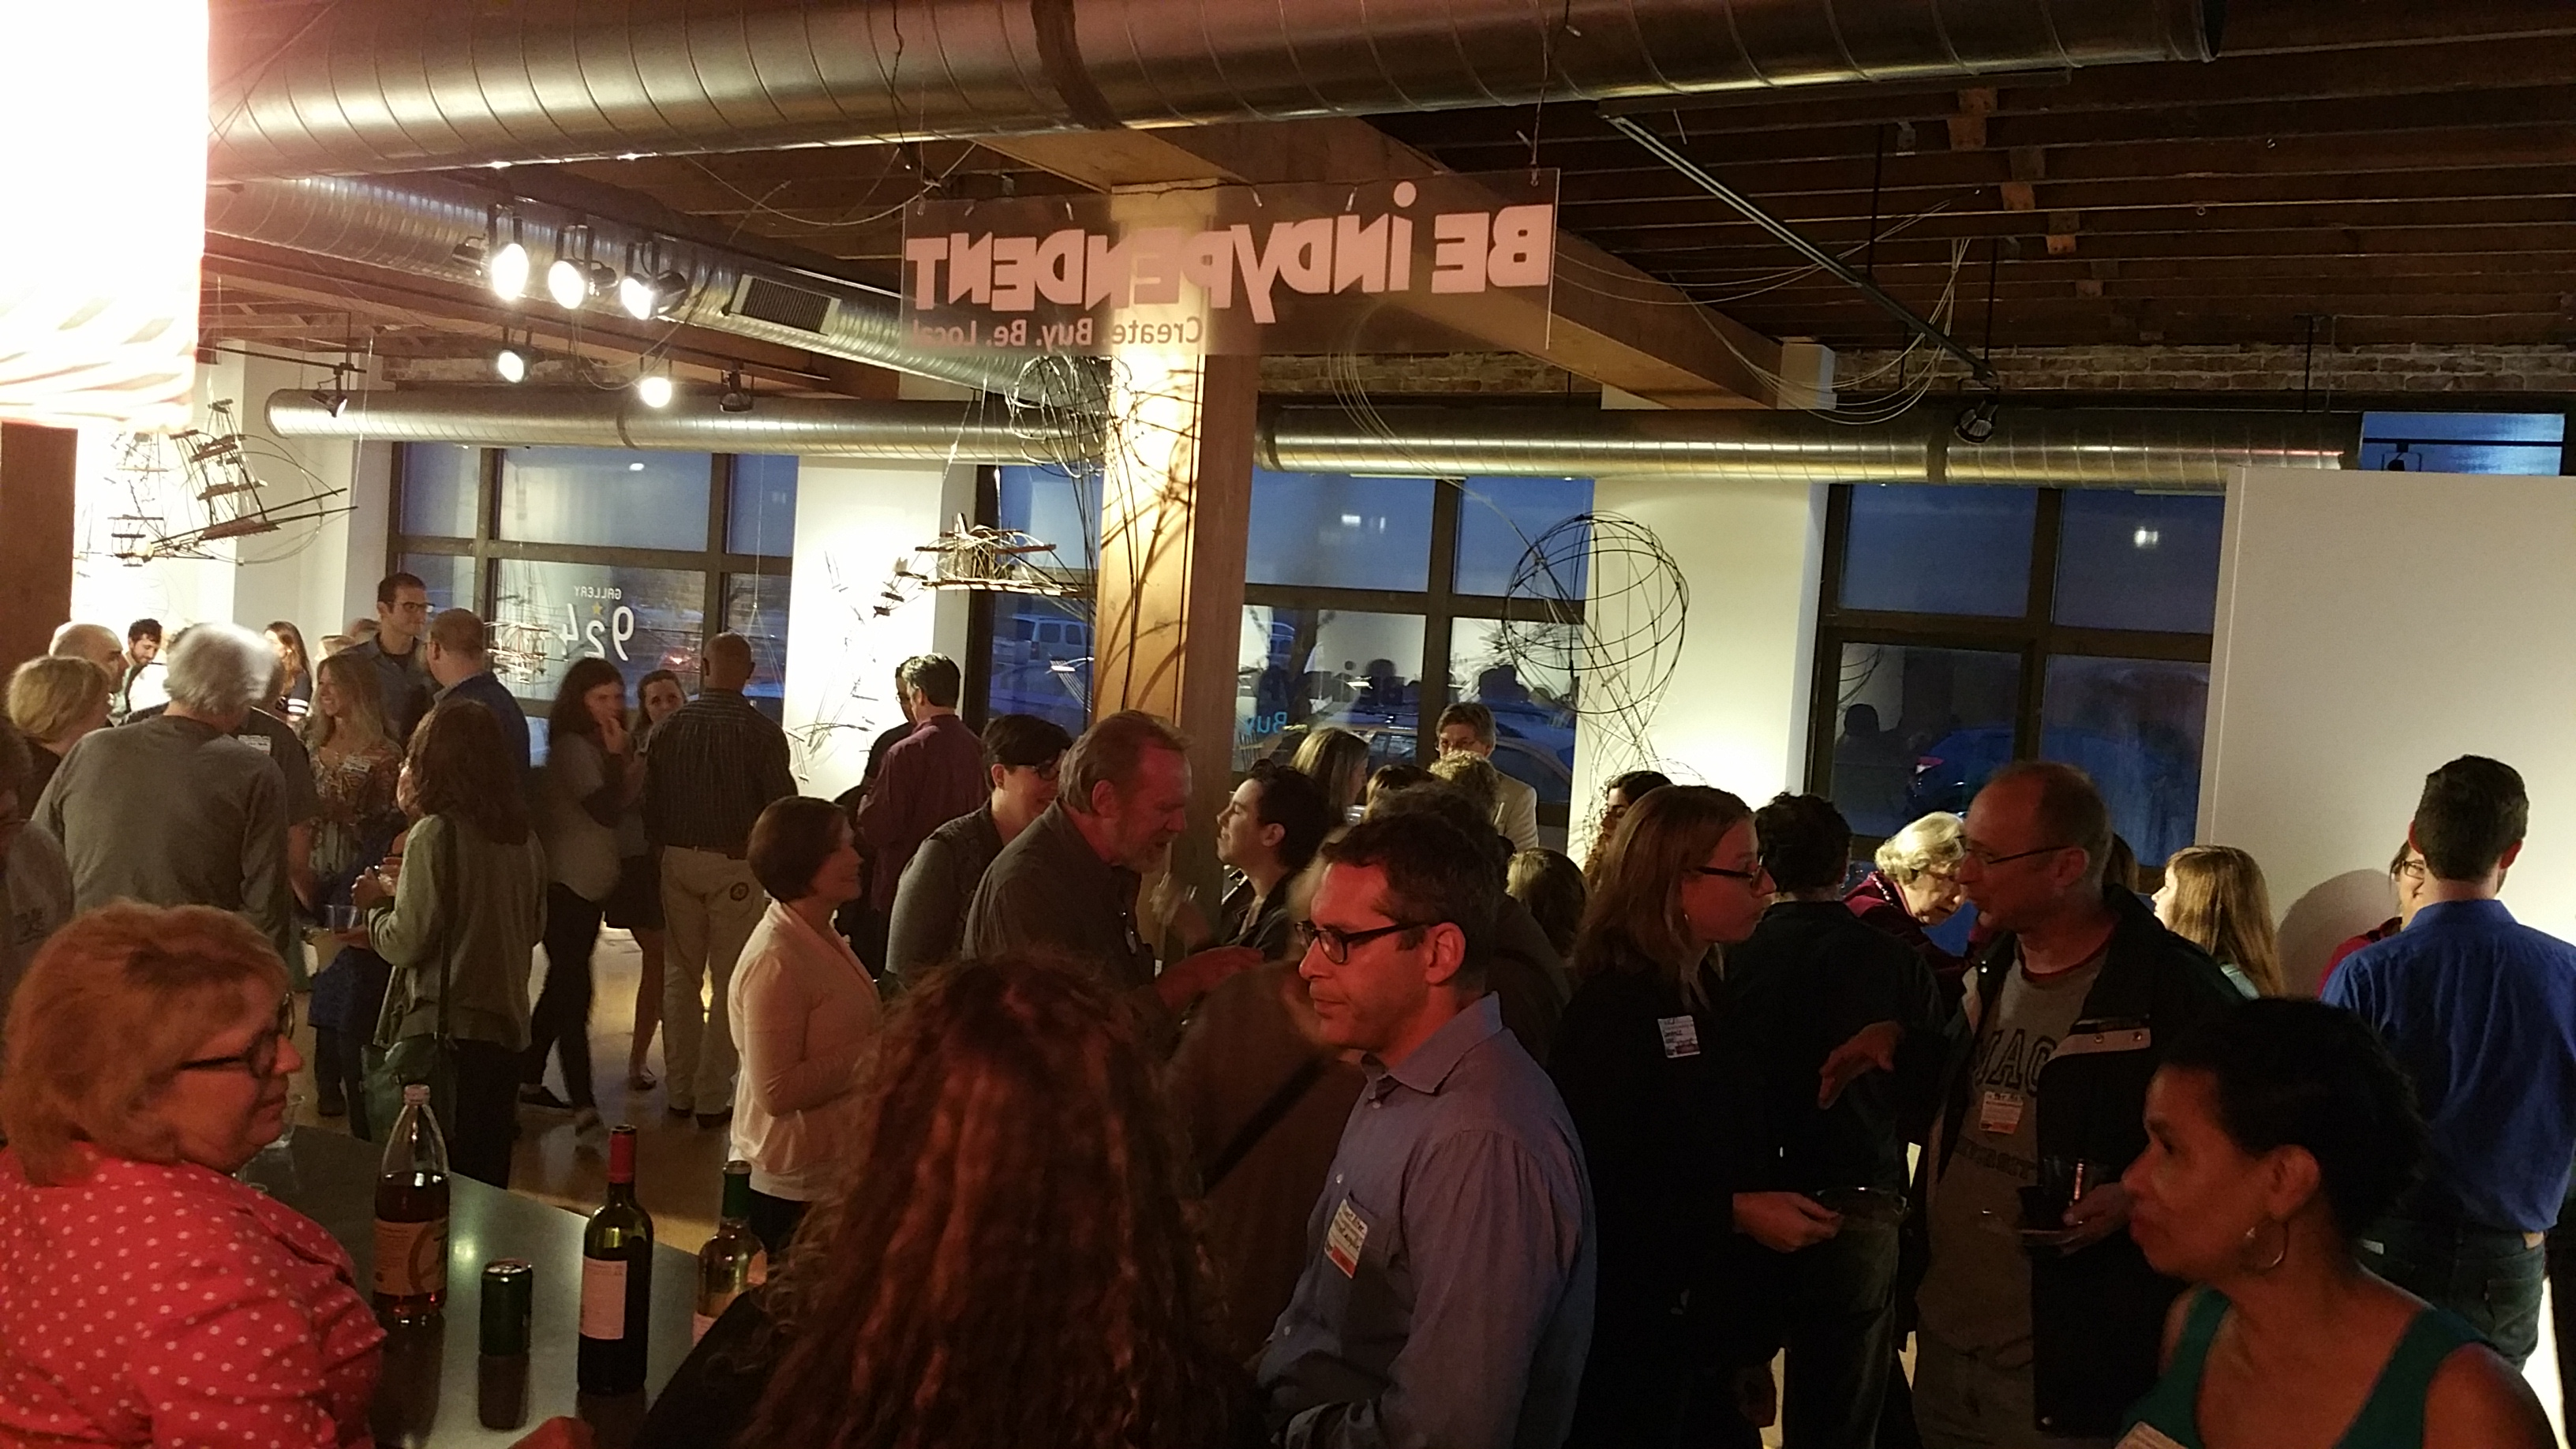 Gallery 924 event